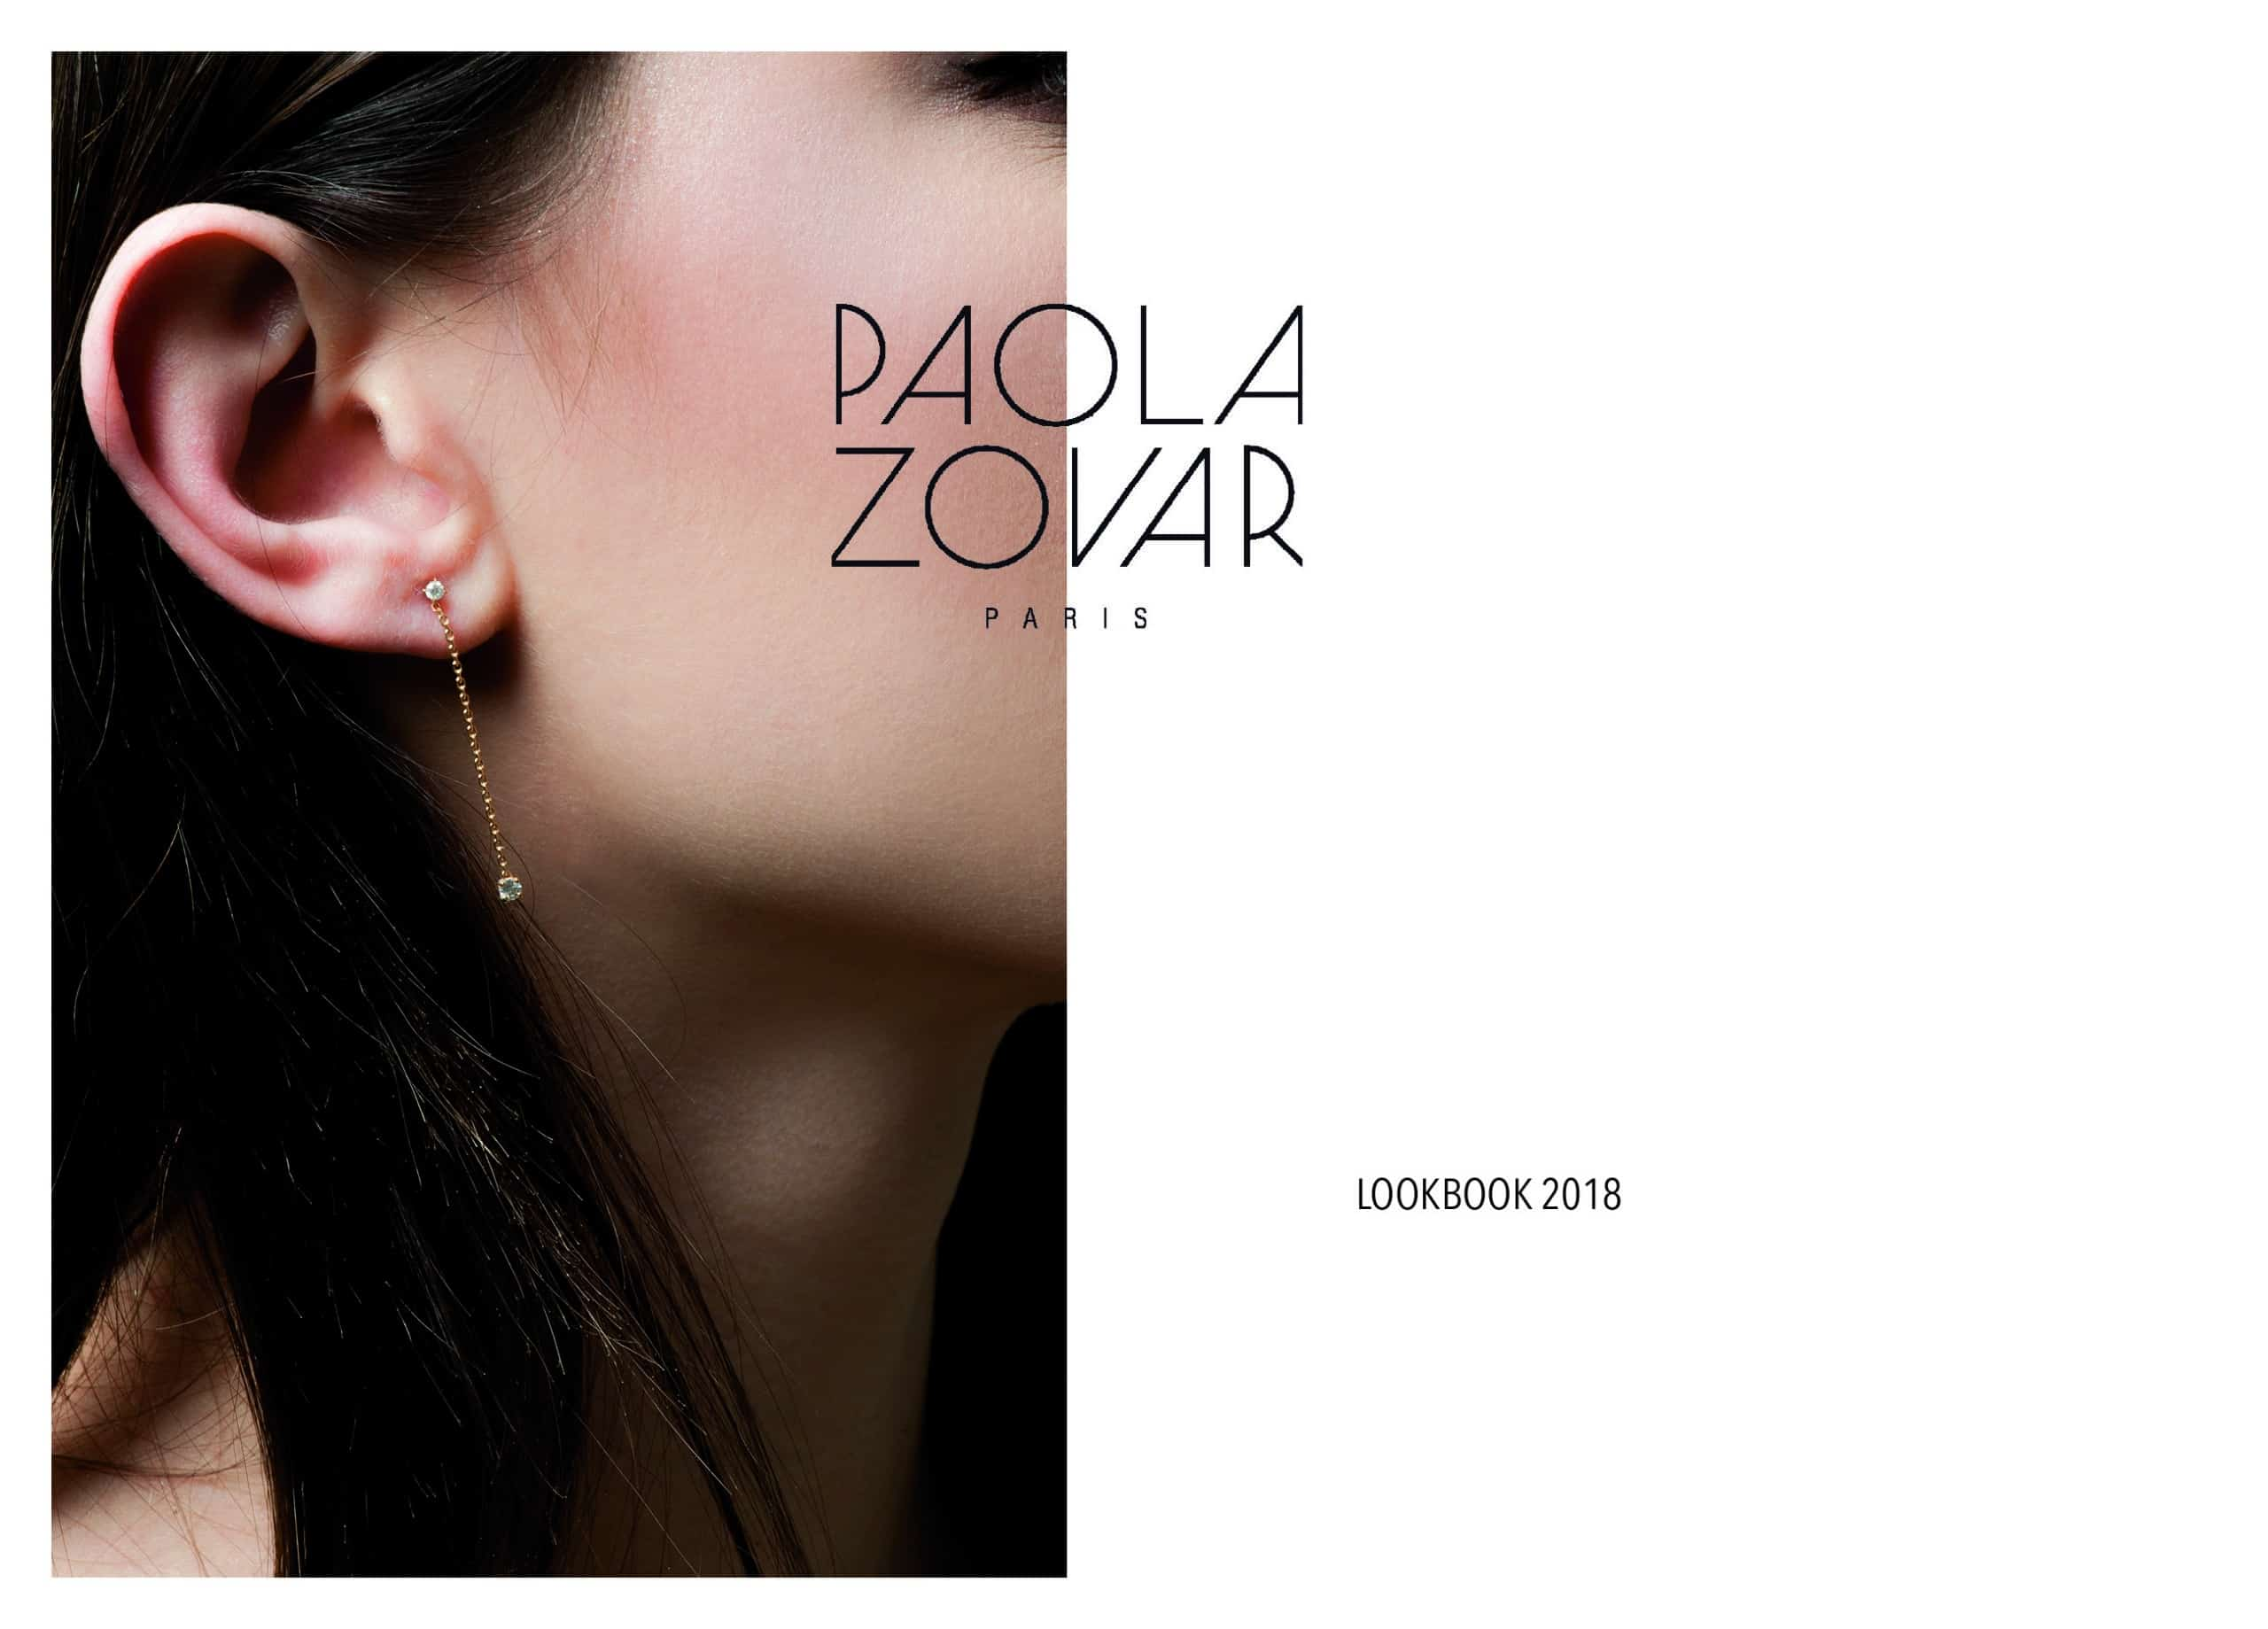 Lookbook collection Paola Zovar